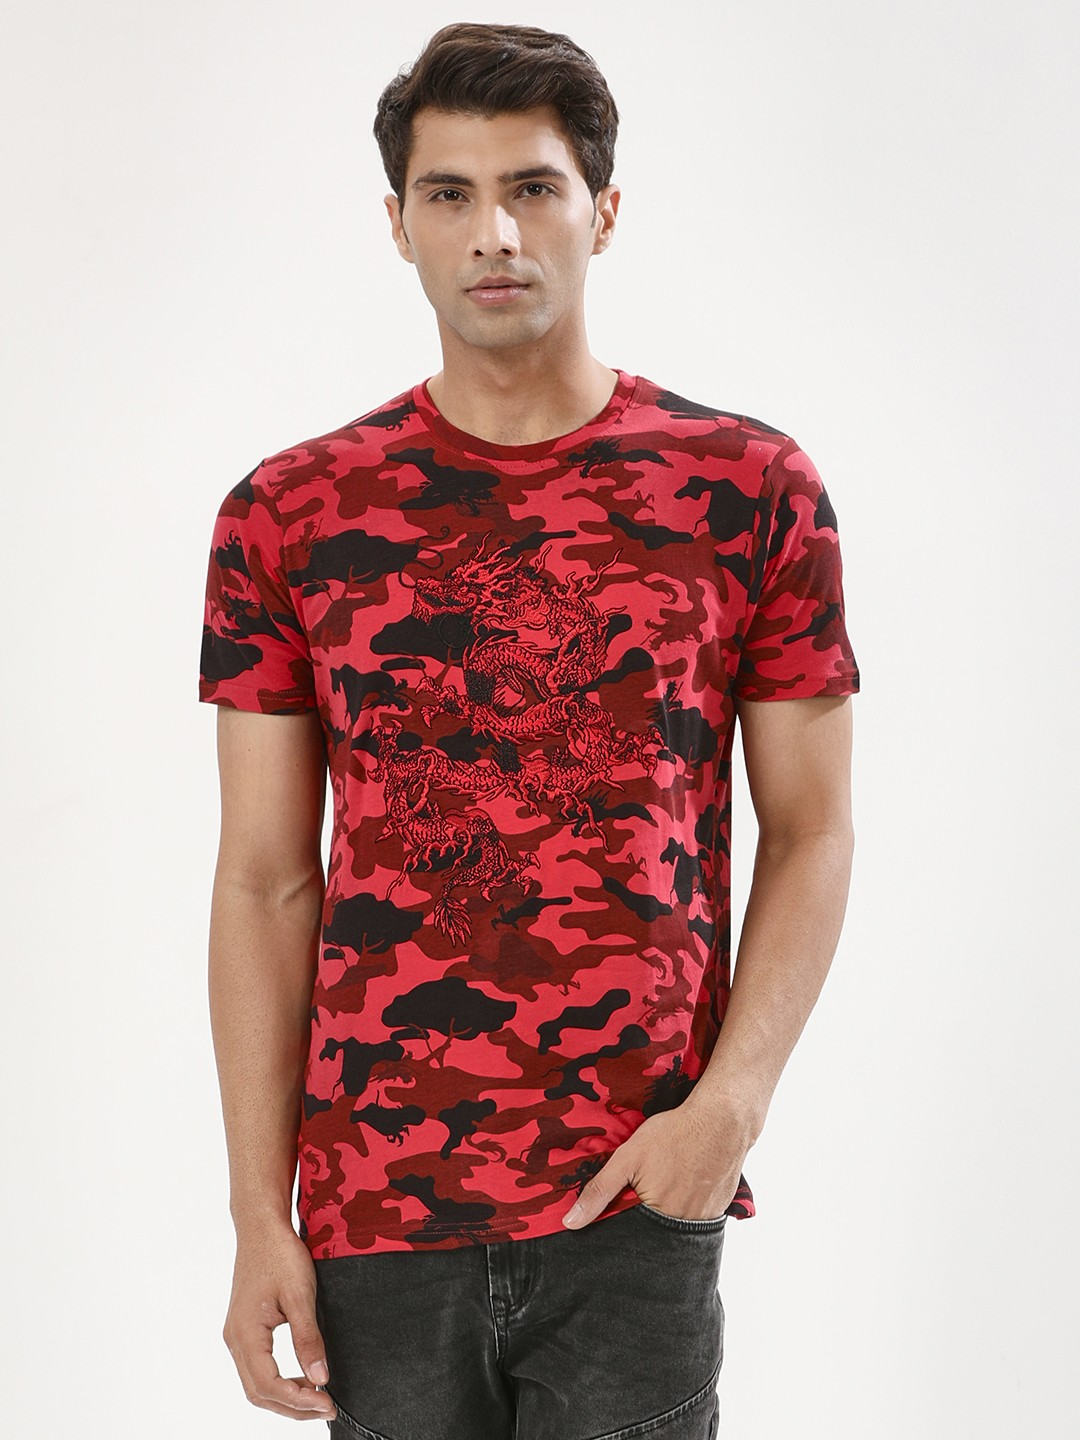 Brave Soul Red Camo Camo T-Shirt With Dragon Embroidery 1